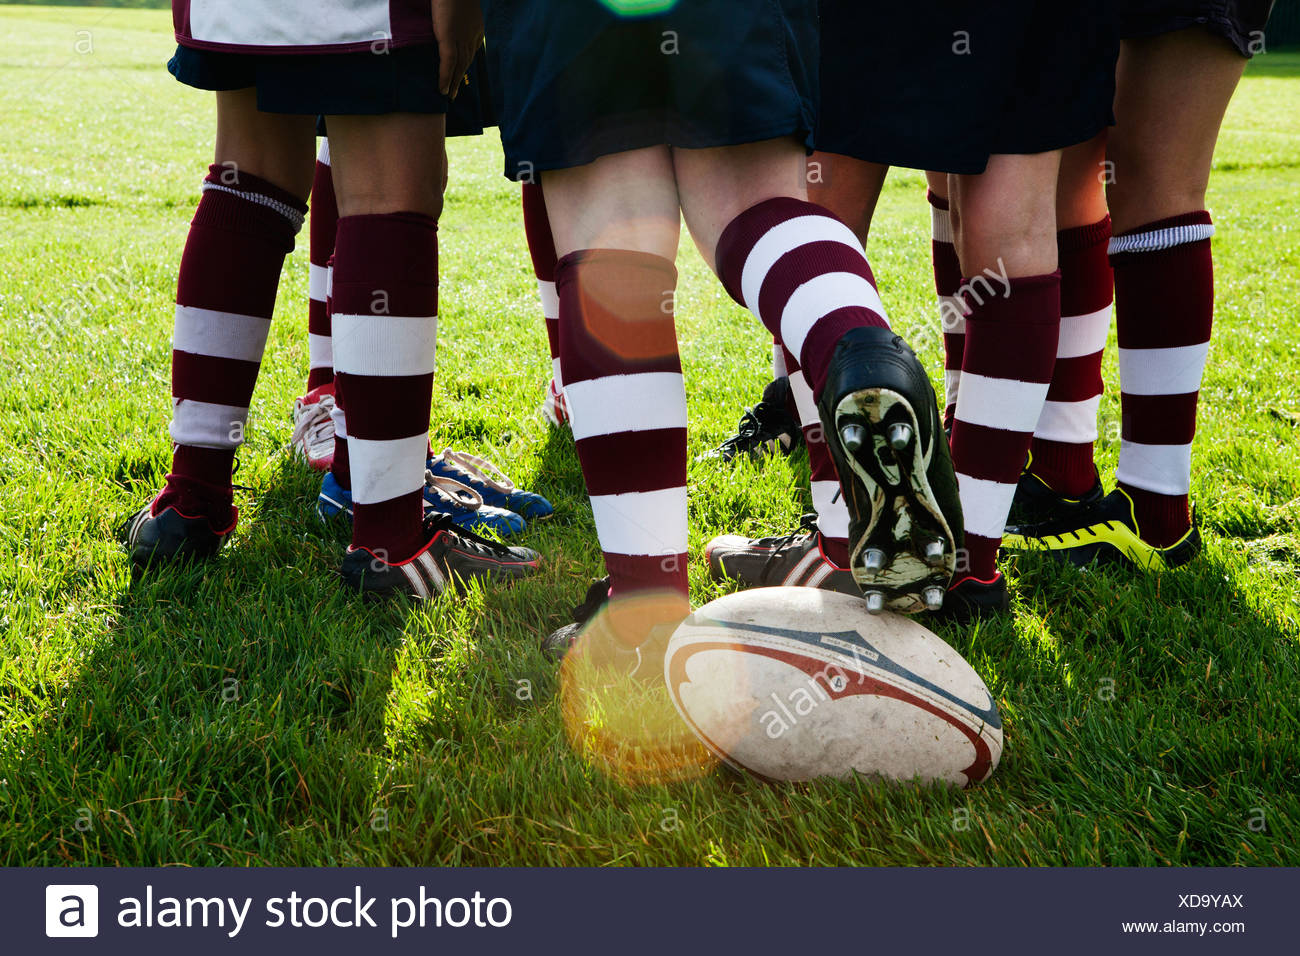 Teenage schoolboy rugby team kicking ball from huddle - Stock Image